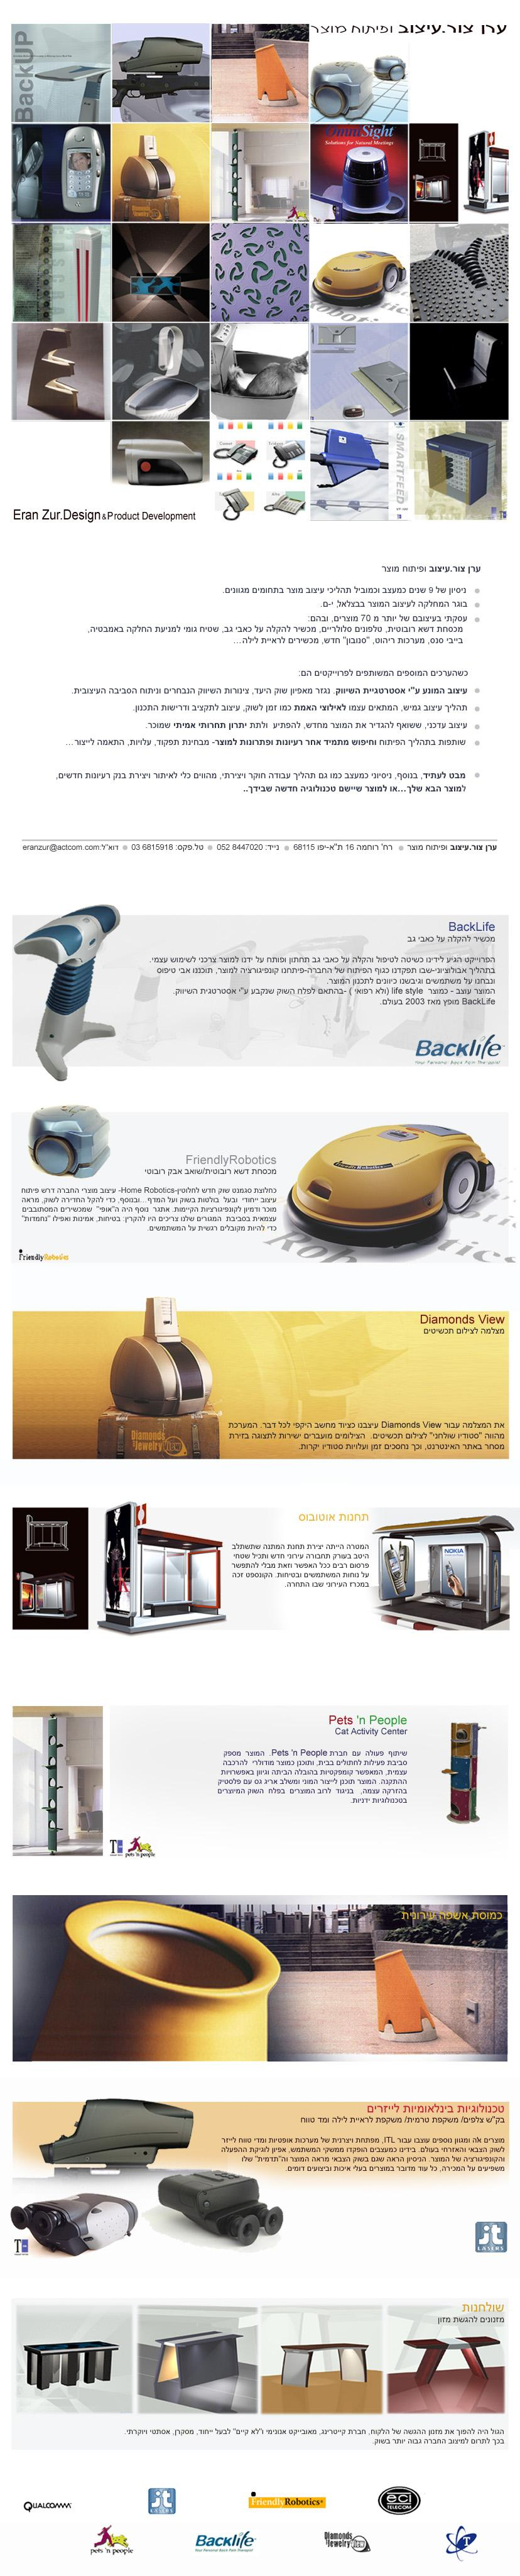 Eran Zur Product Design